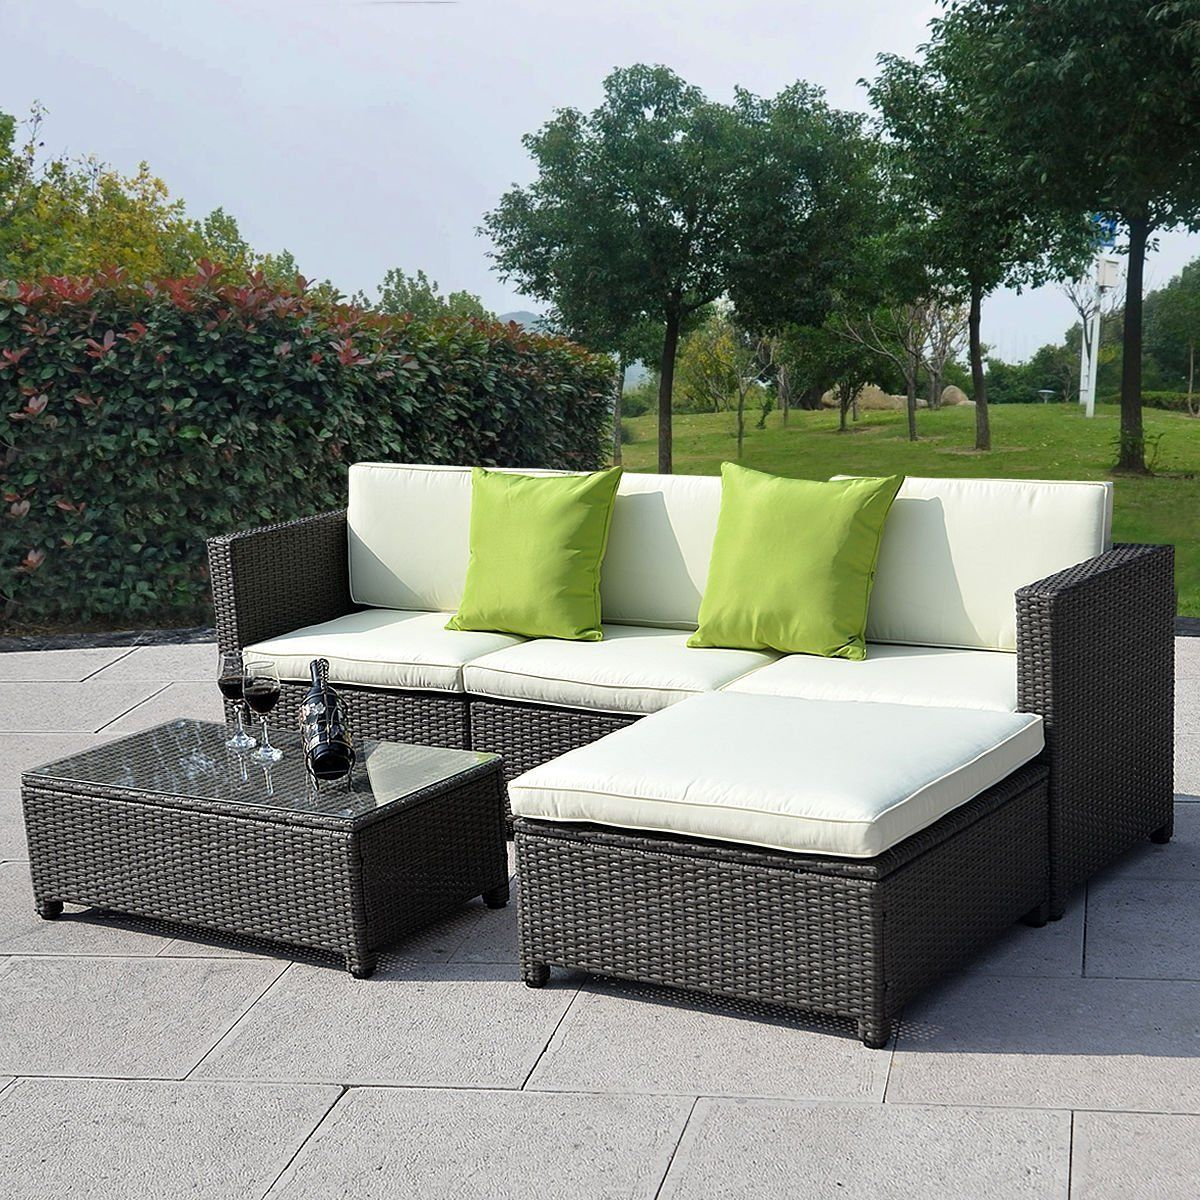 Baptist 6 Piece Rattan Sofa Set With Cushions Rattan Outdoor Furniture Clearance Best Interior Furniture